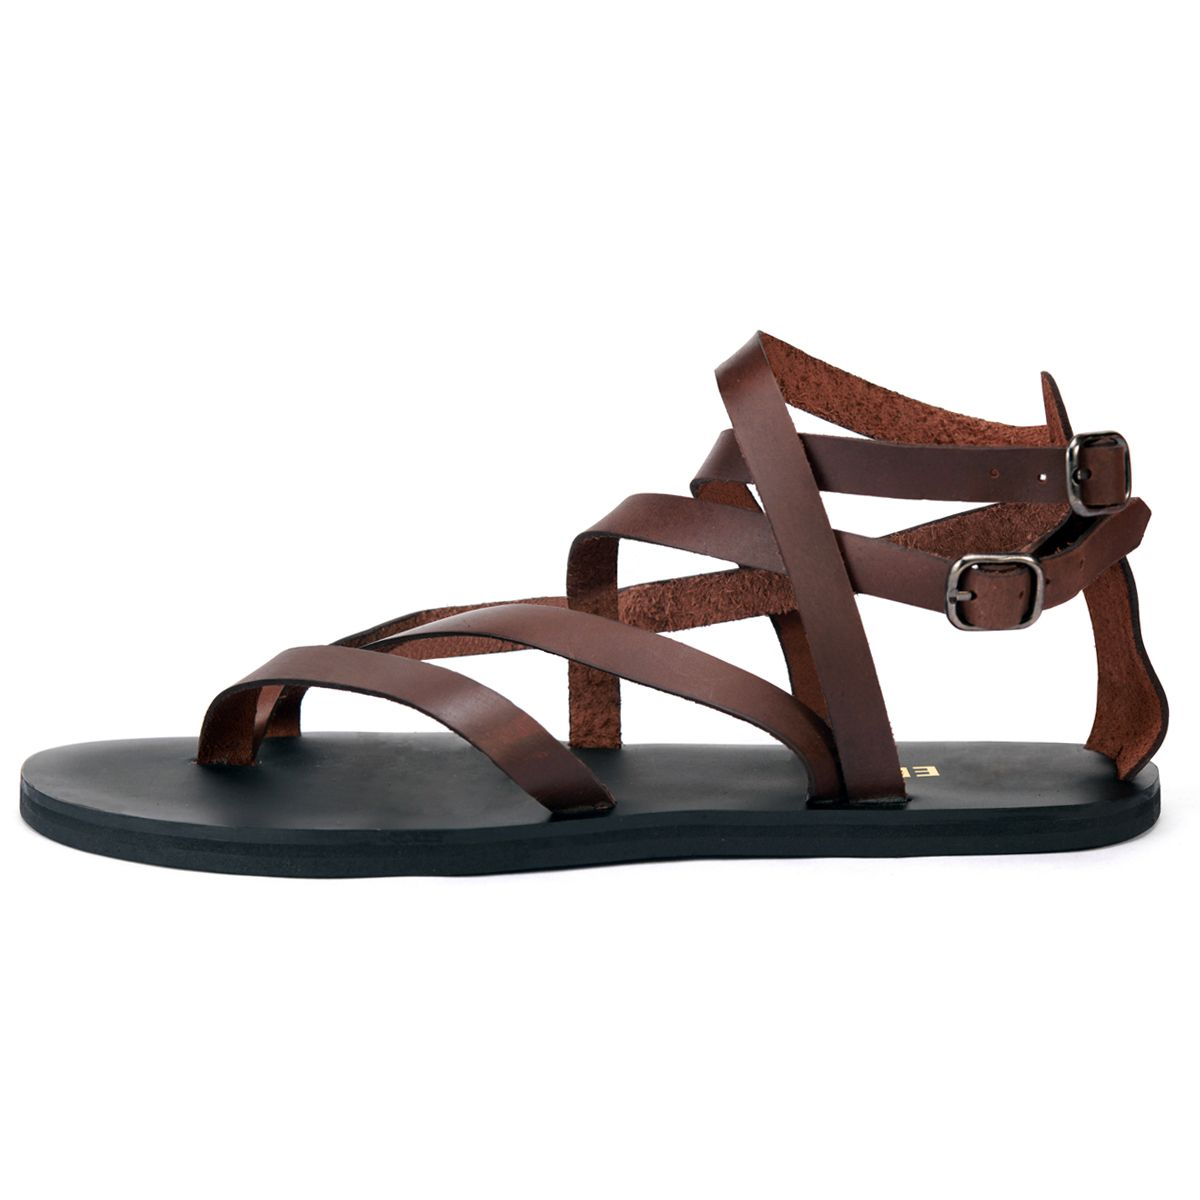 02beac70f72 Gladiator Sandals for Men Price